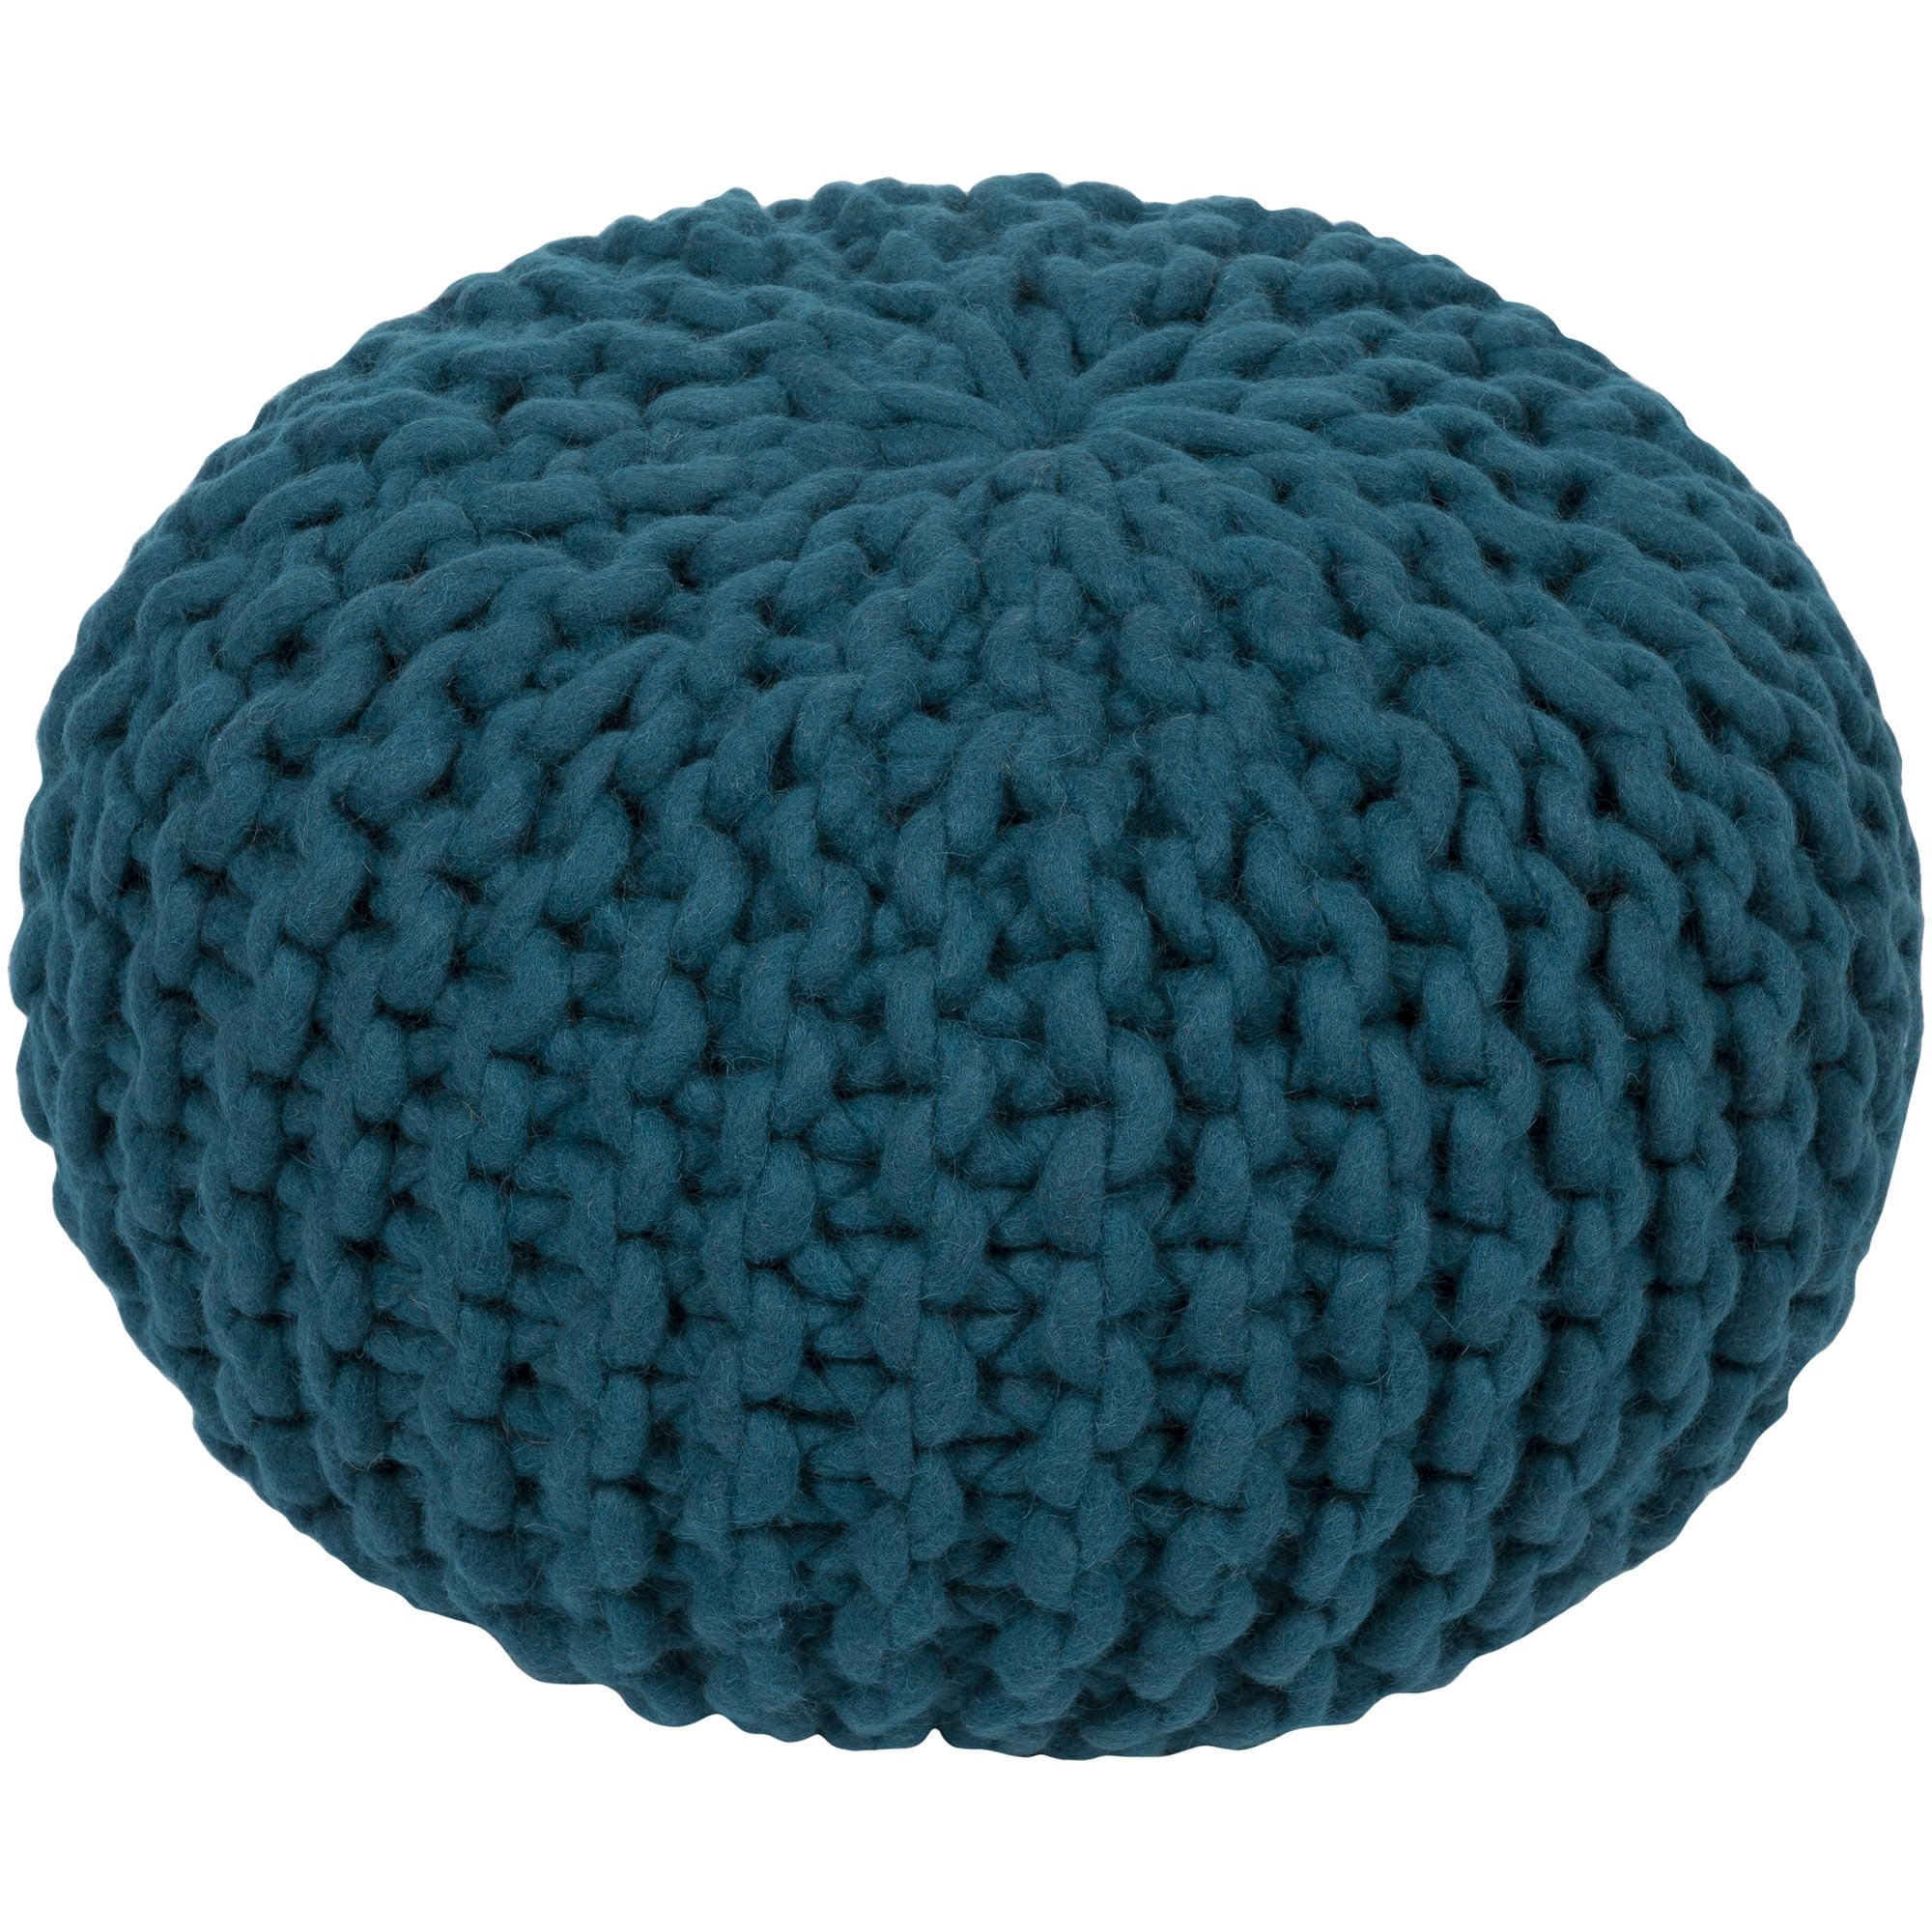 Surya FGPF-005 100-Percent Wool Pouf, 20-Inch by 20-Inch by 14-Inch, Teal